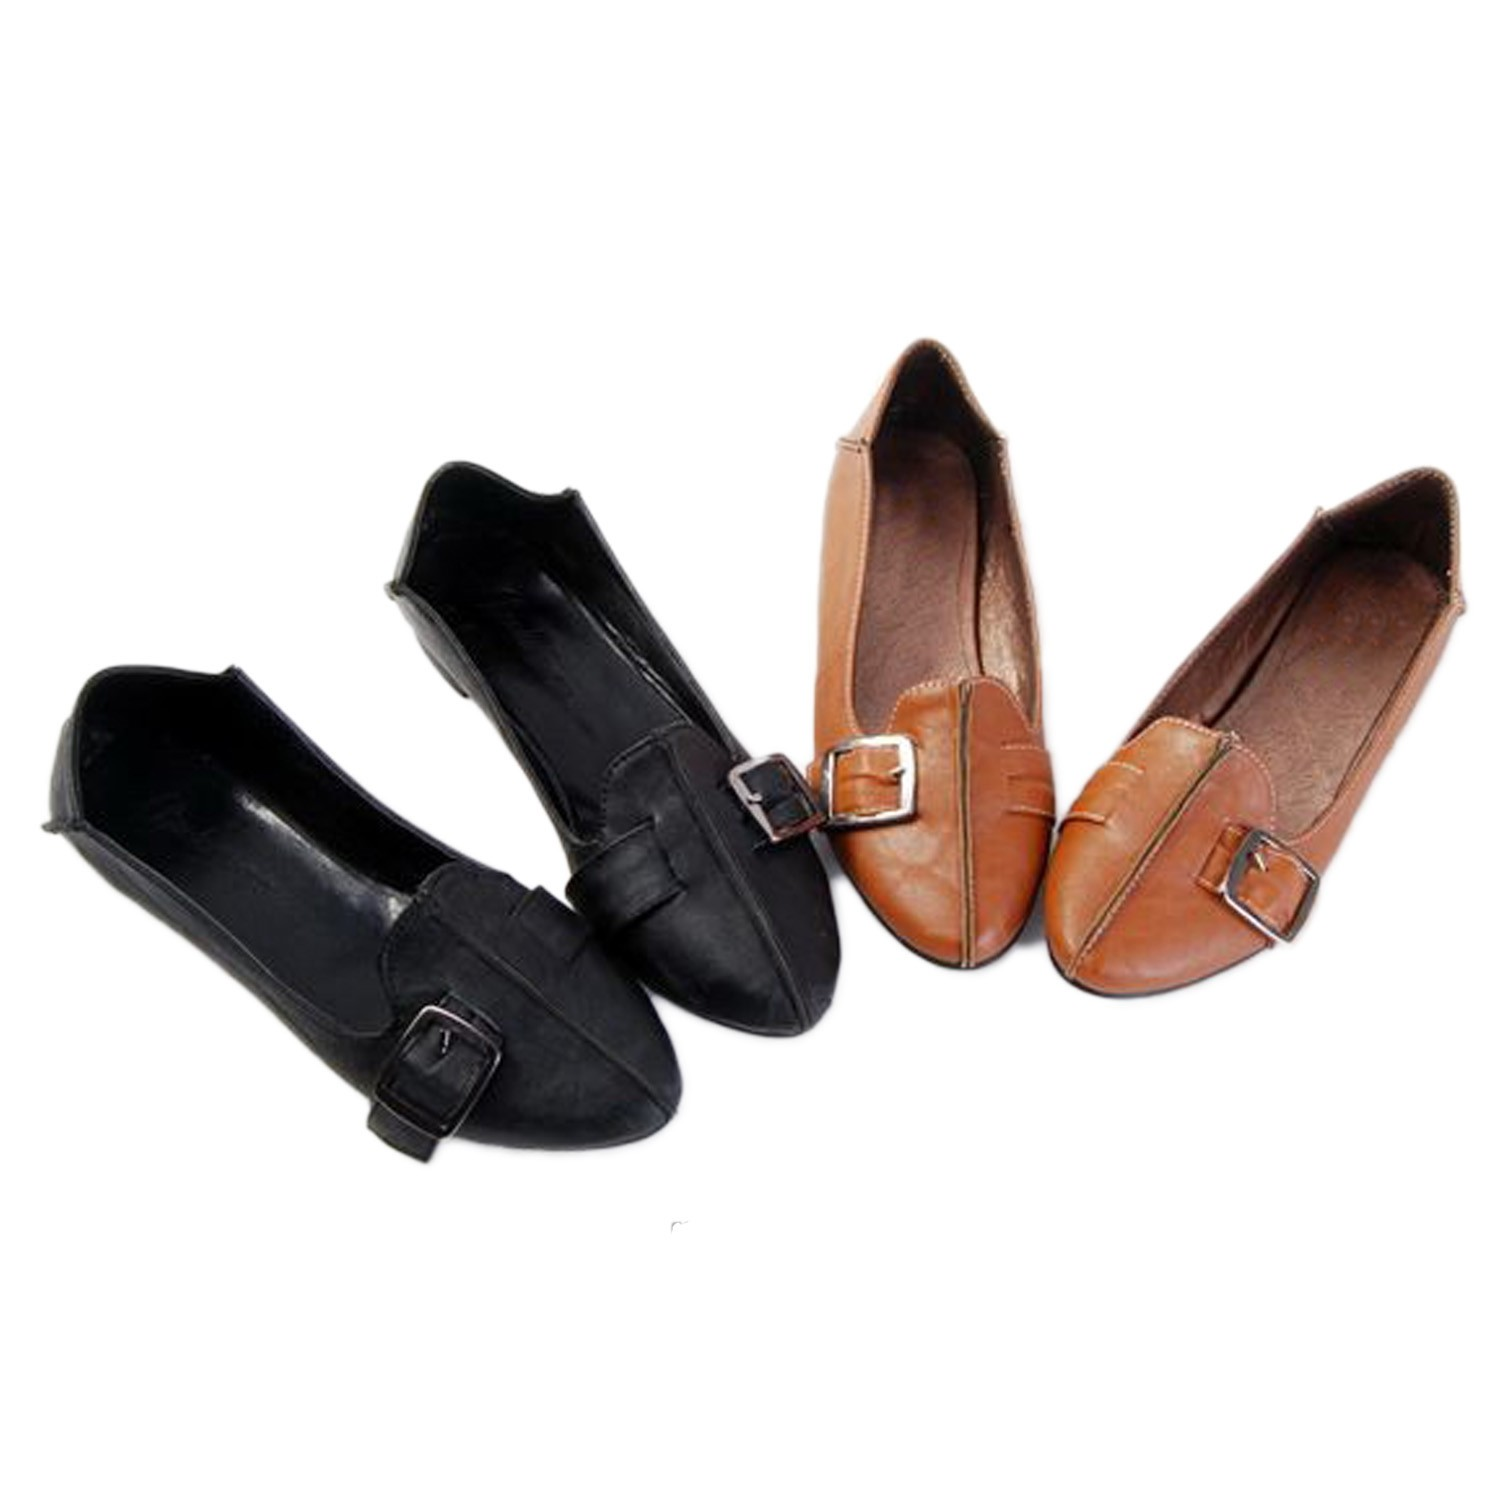 Pointed Toe Ballet Flats Shoes - SF11#